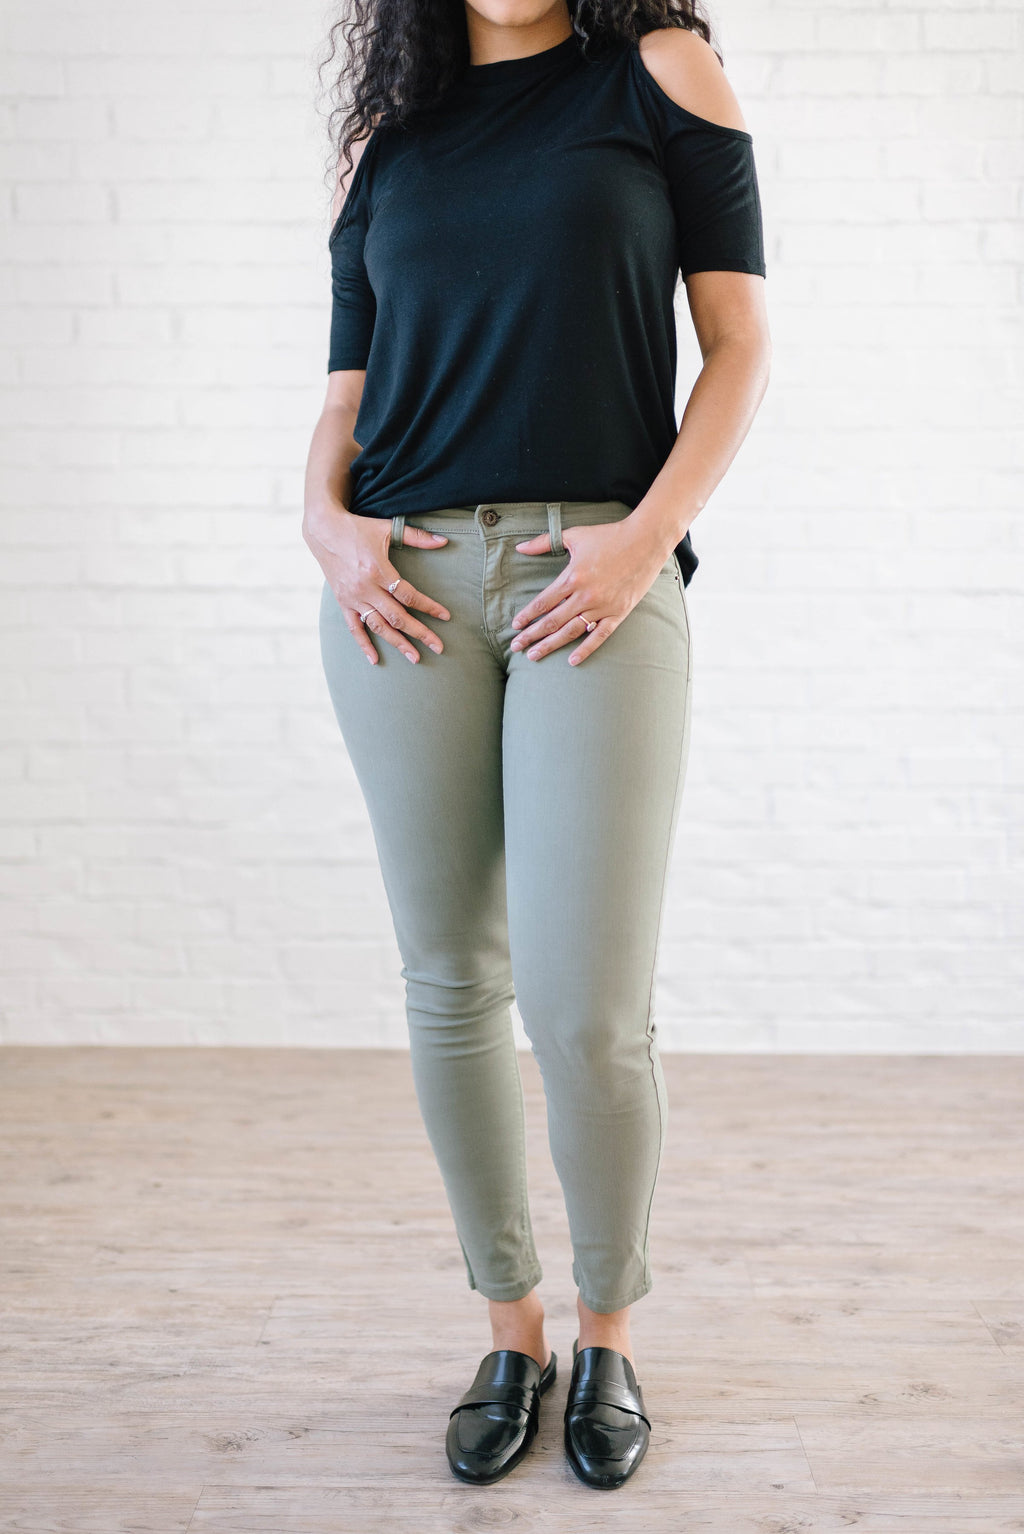 Low Rise Skinny Jeans in Light Olive- ALL SALES FINAL